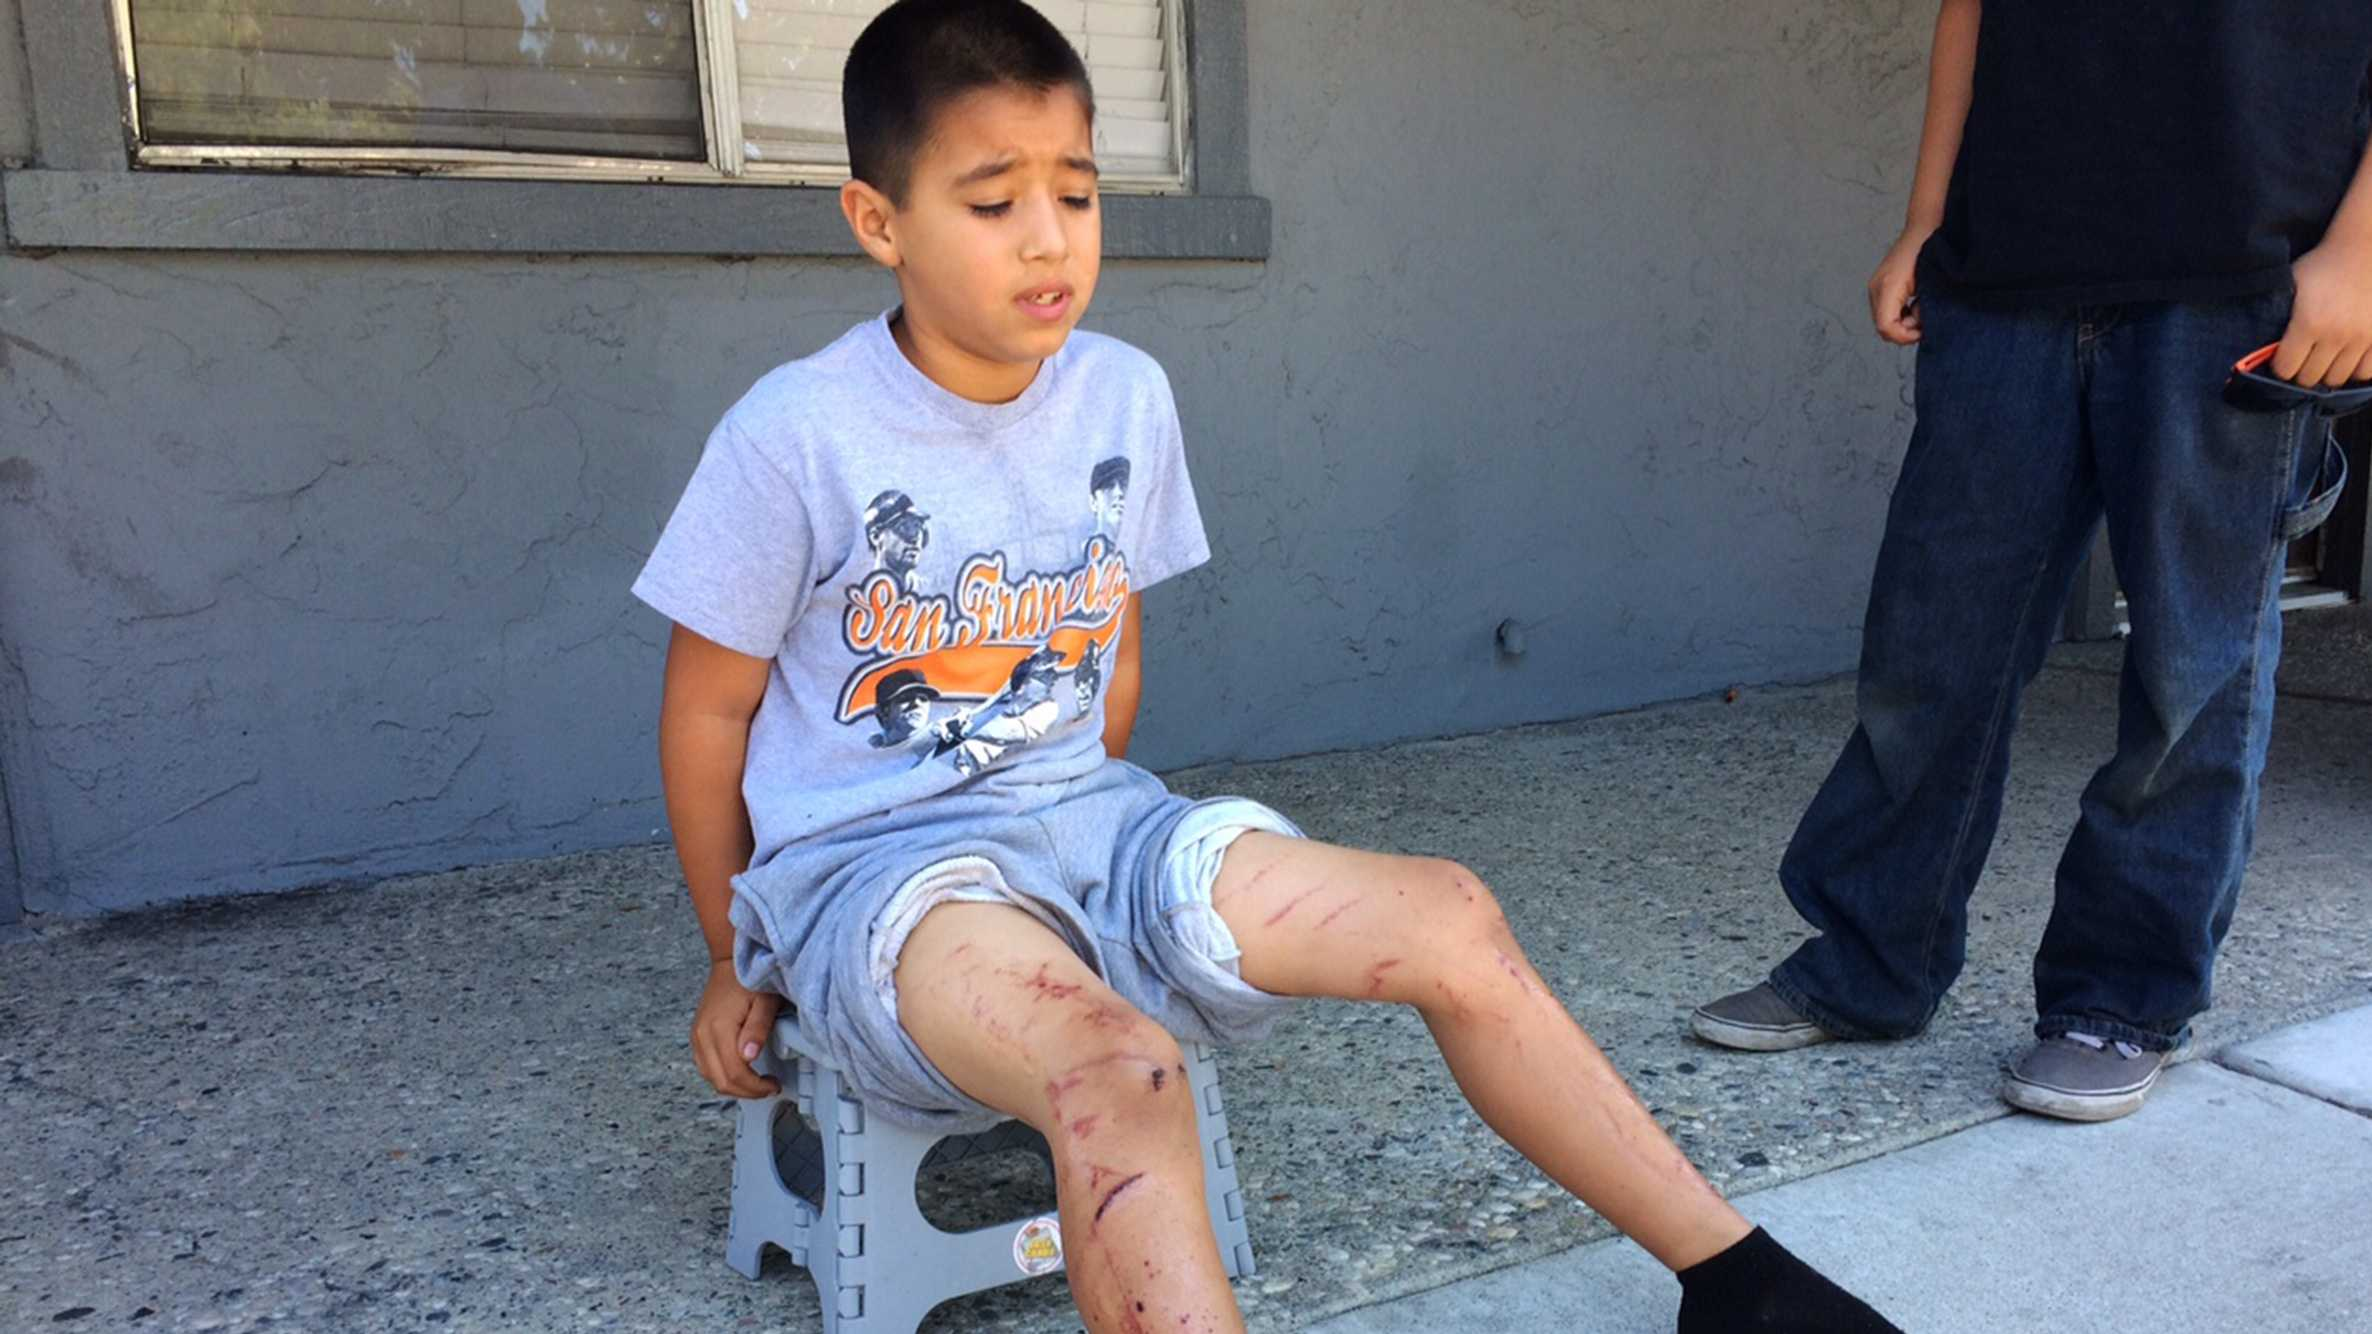 Dakota Ortez was burned in an illegal firework accident at a Hollister block party on the 4th of July.